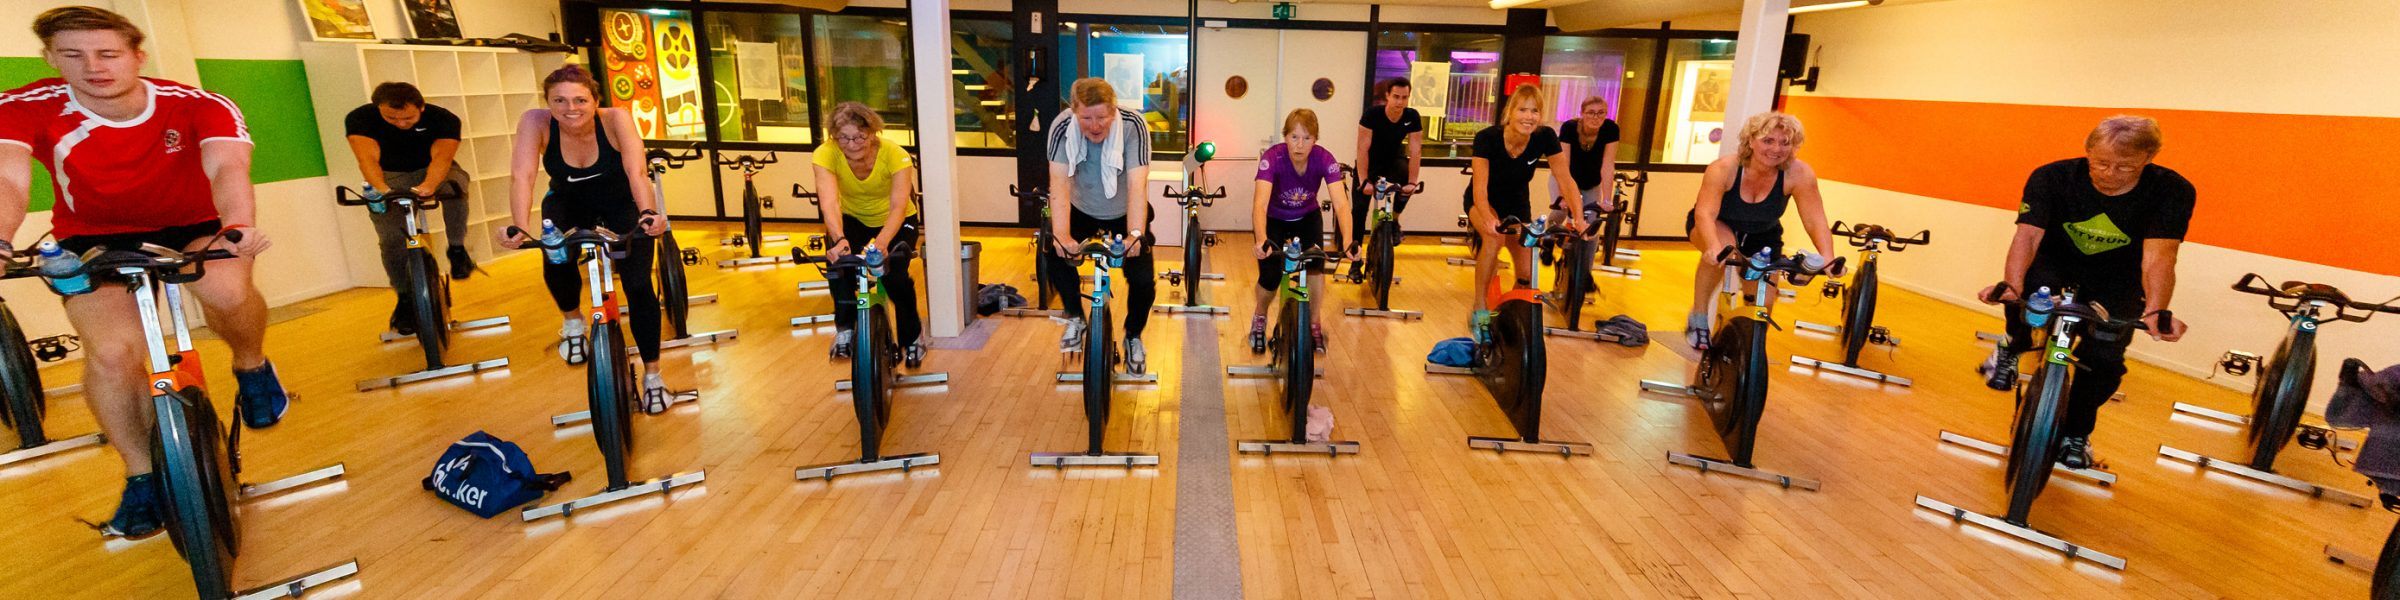 Sportschool basic fitness loosdrecht for Basic fit inschrijven